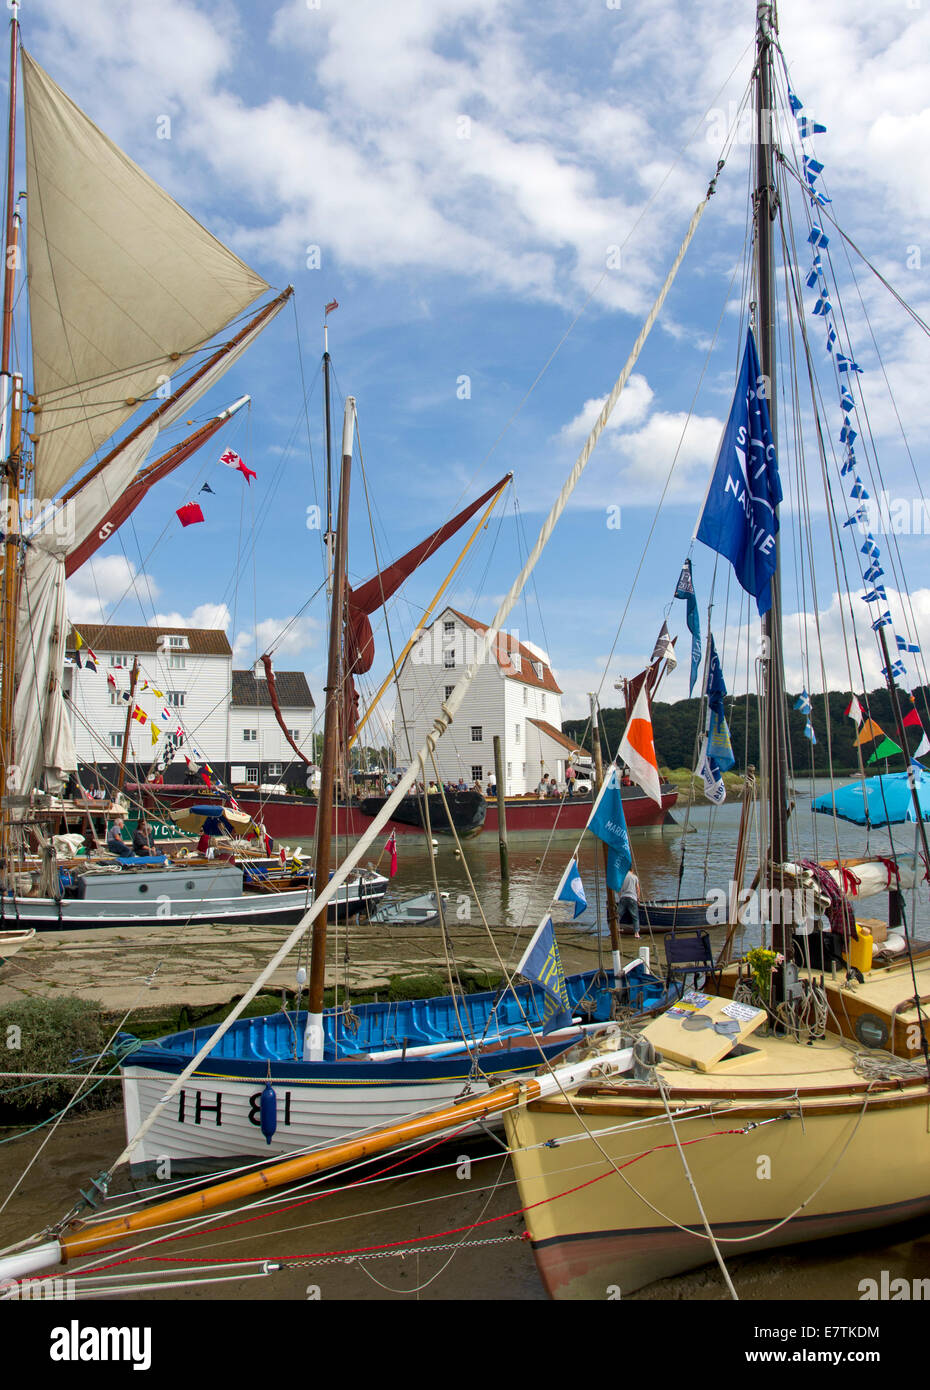 Woodbridge with boats and the famous Tide Mill on the River Deben - Stock Image